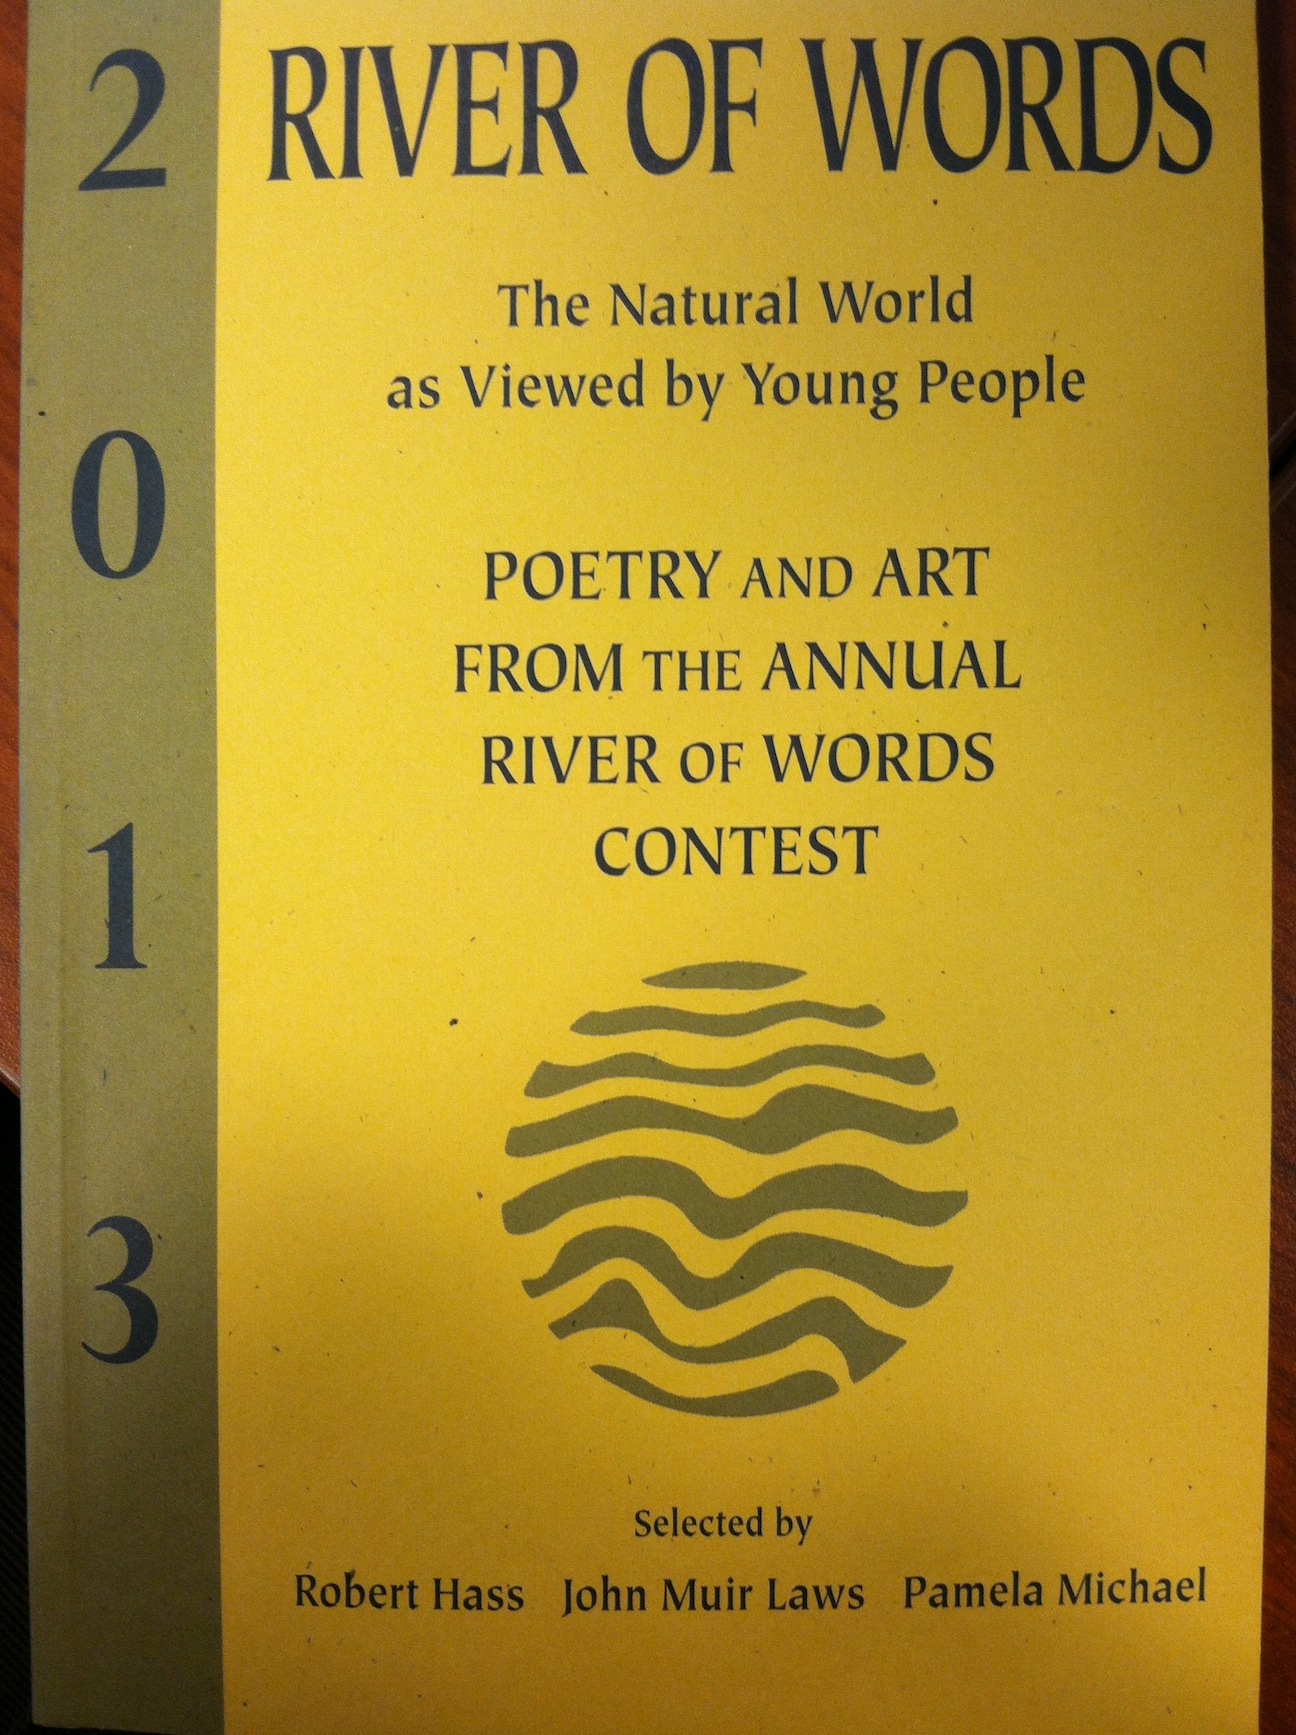 2013 River of Words Anthology